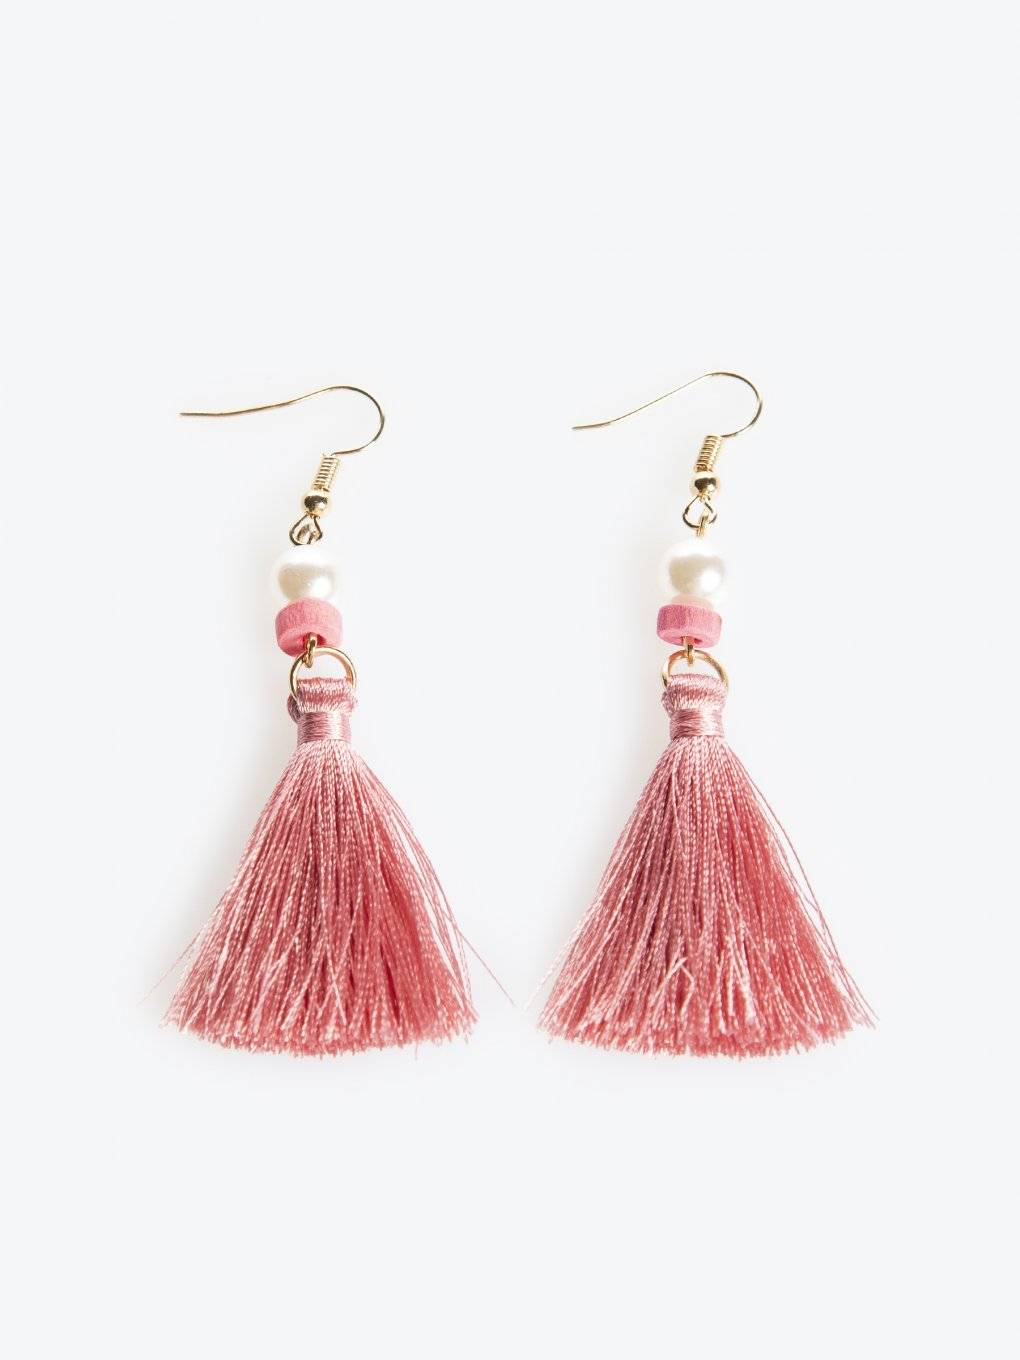 Long drop earrings with tassels